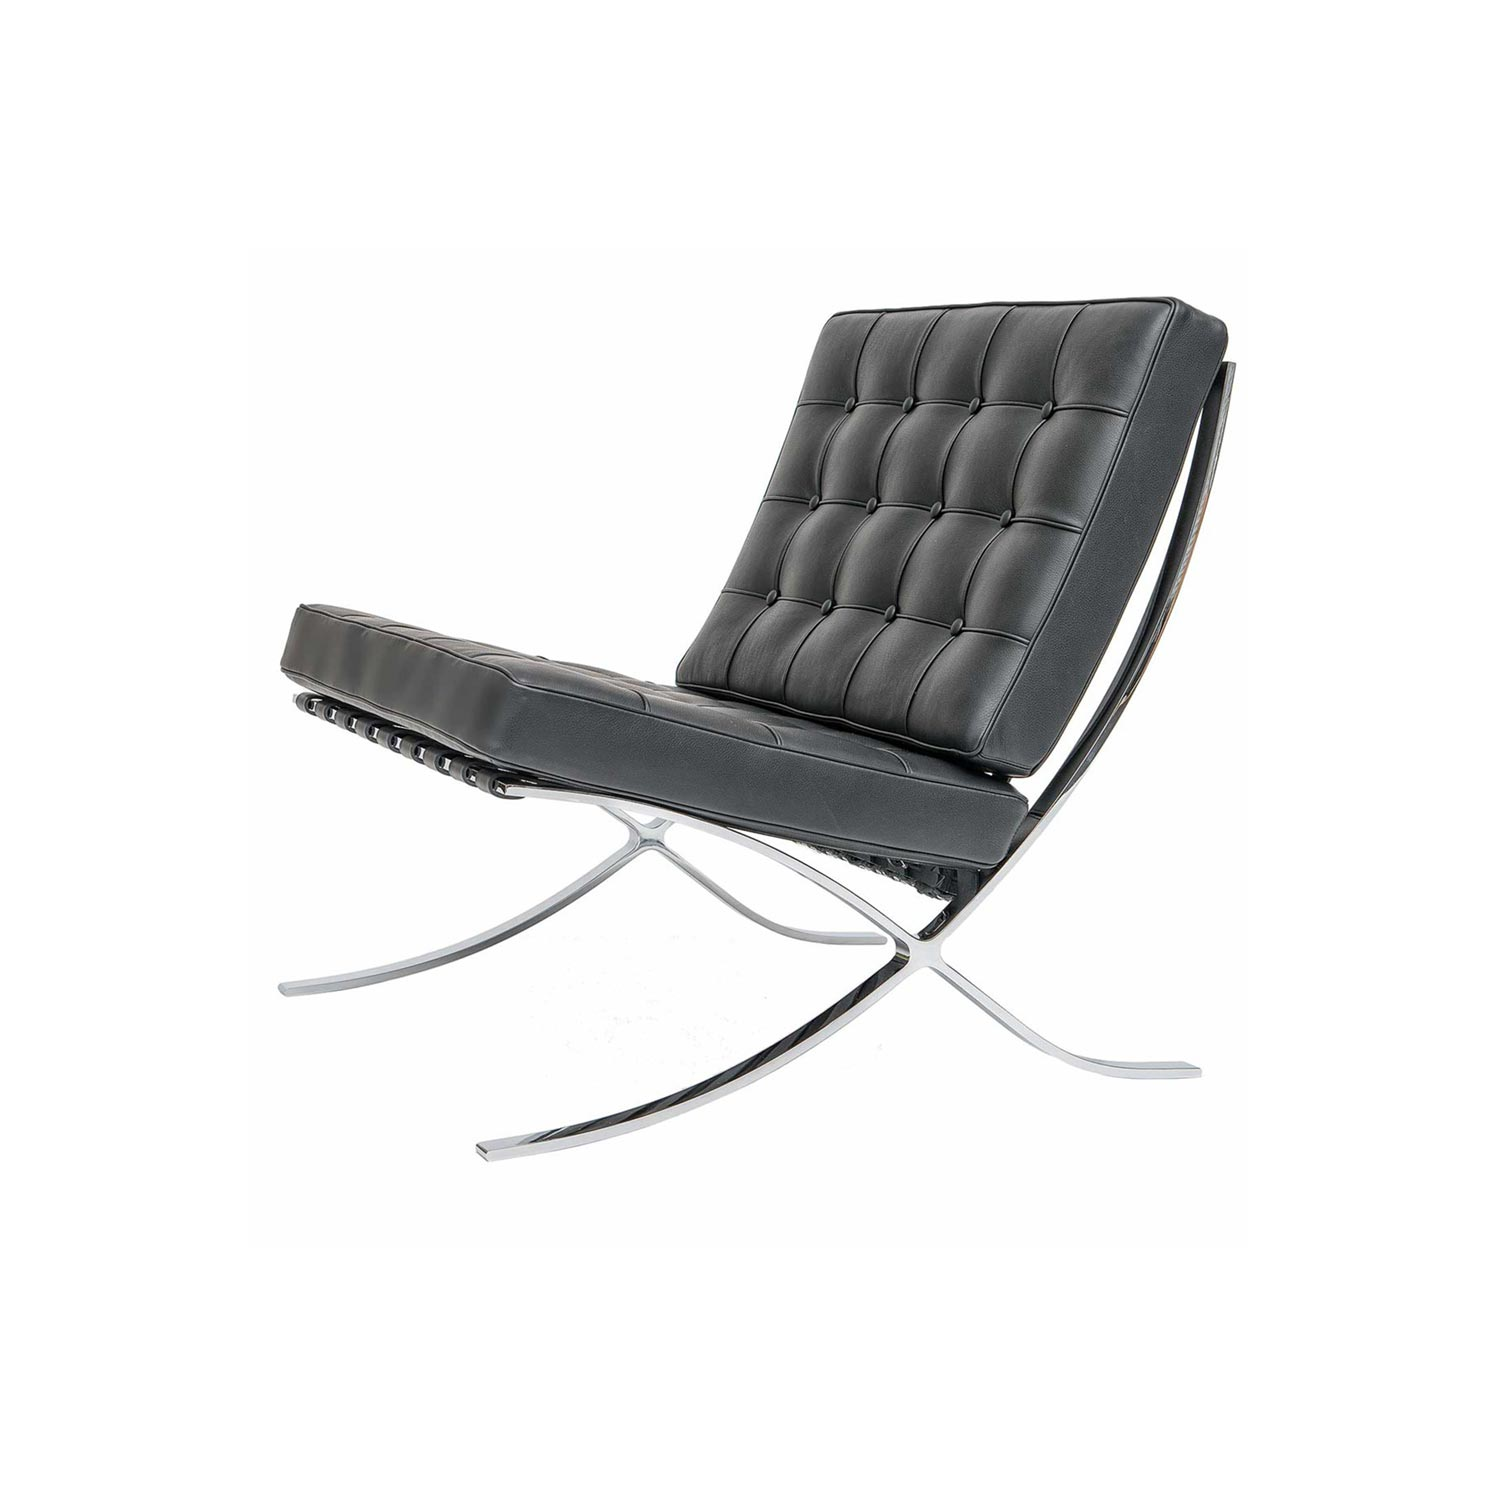 barcelona style chair by mies van der rohe steelform design classics. Black Bedroom Furniture Sets. Home Design Ideas